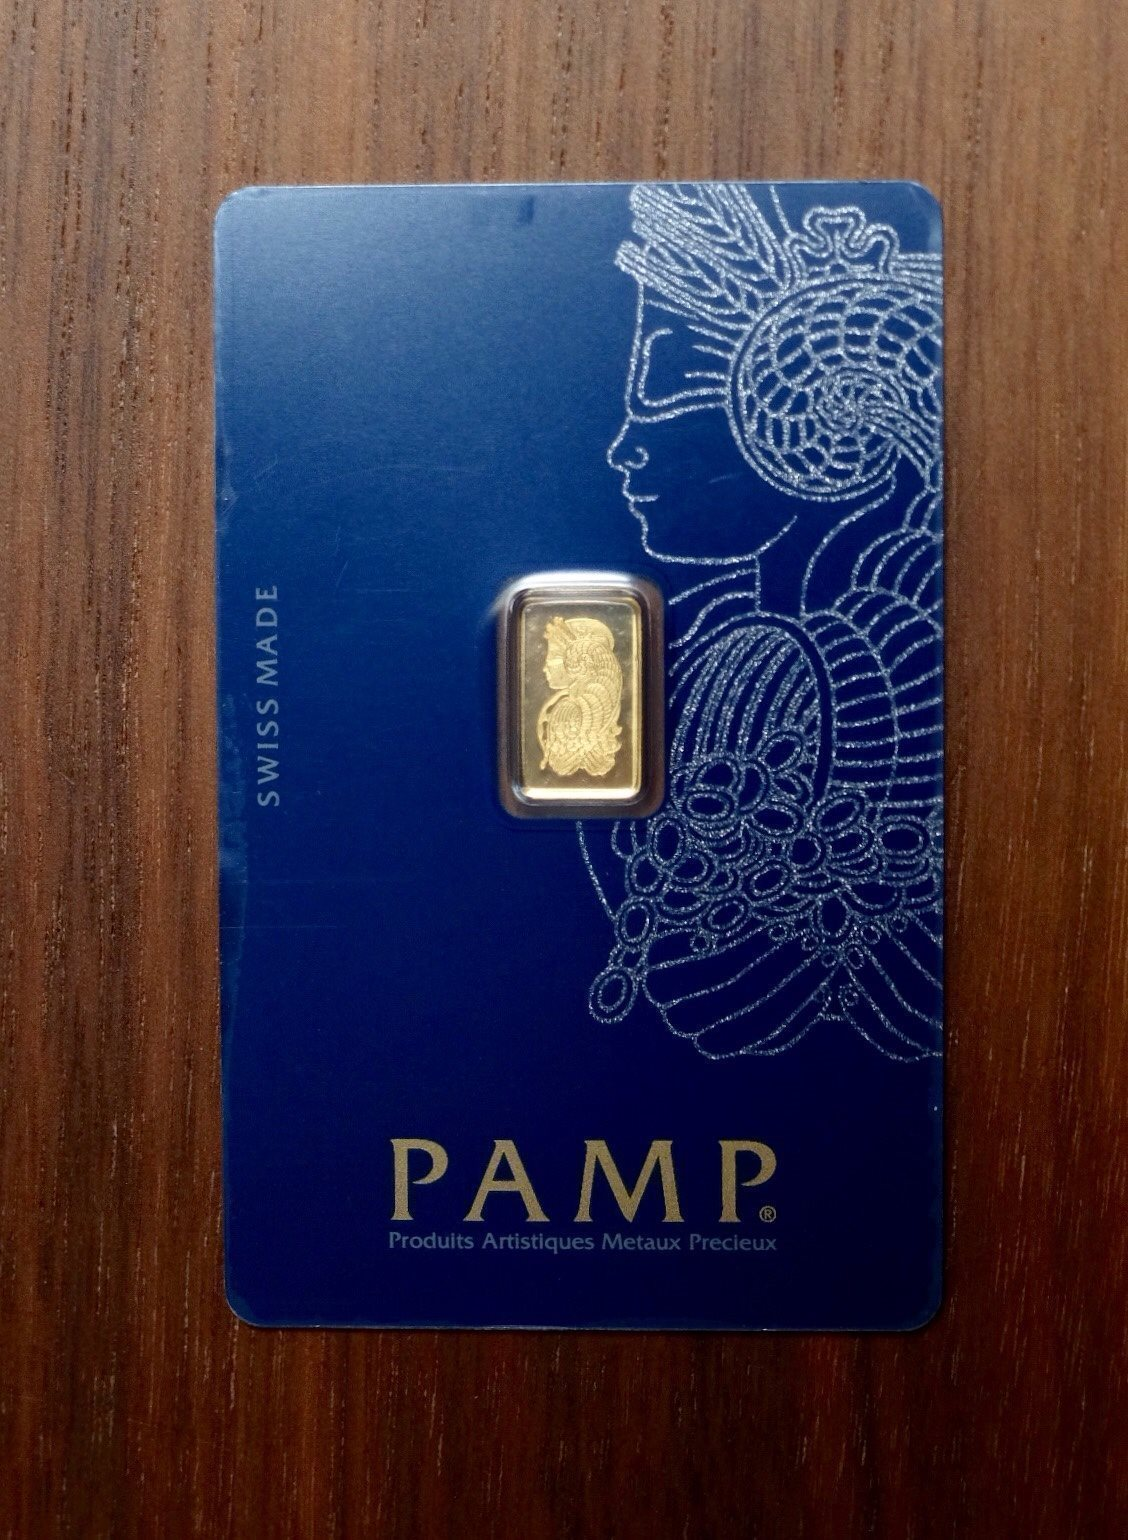 PAMP 1 Gram Gold Bar Minted 999.9 guldtacka